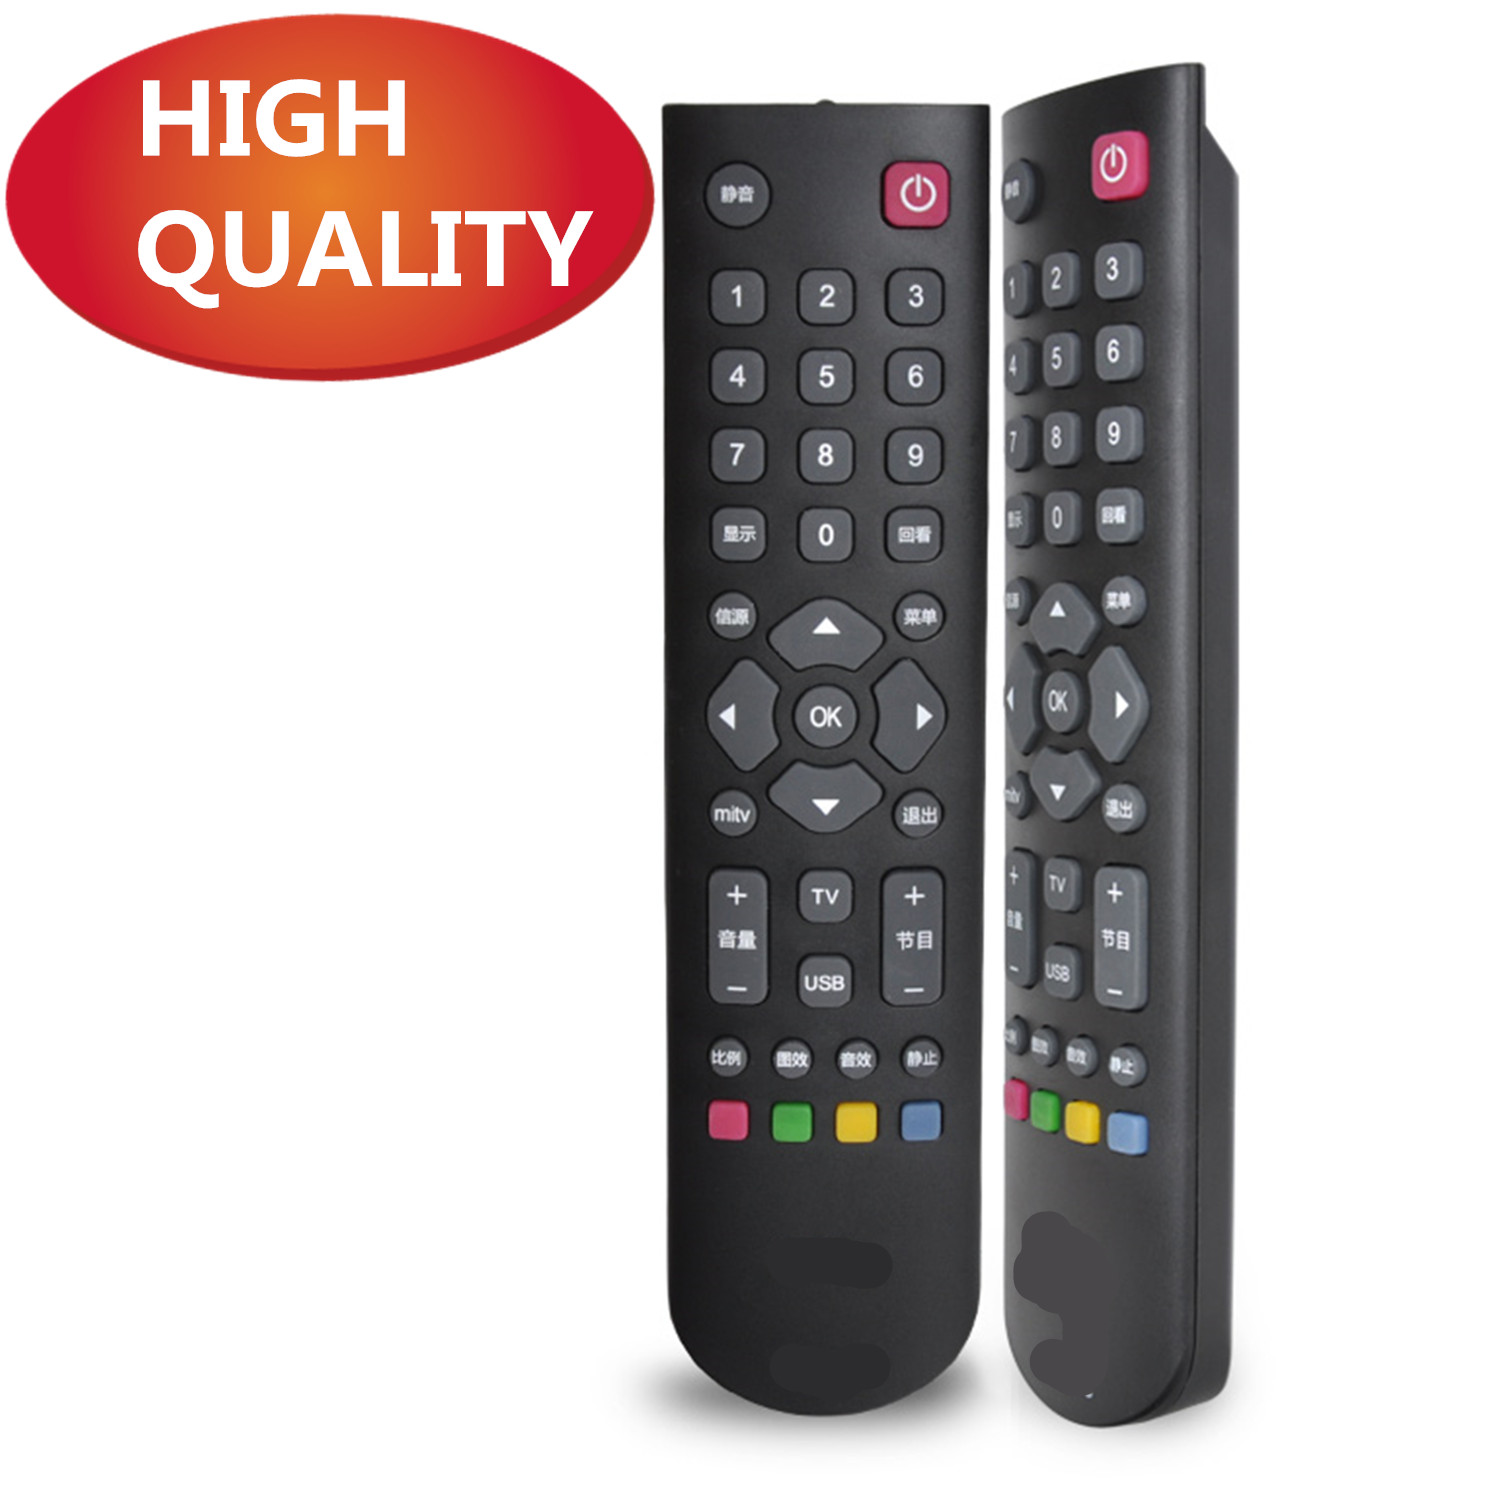 not need set remote control universal for philips tv smart lcd led thomson tcl erisson rc3000e01. Black Bedroom Furniture Sets. Home Design Ideas